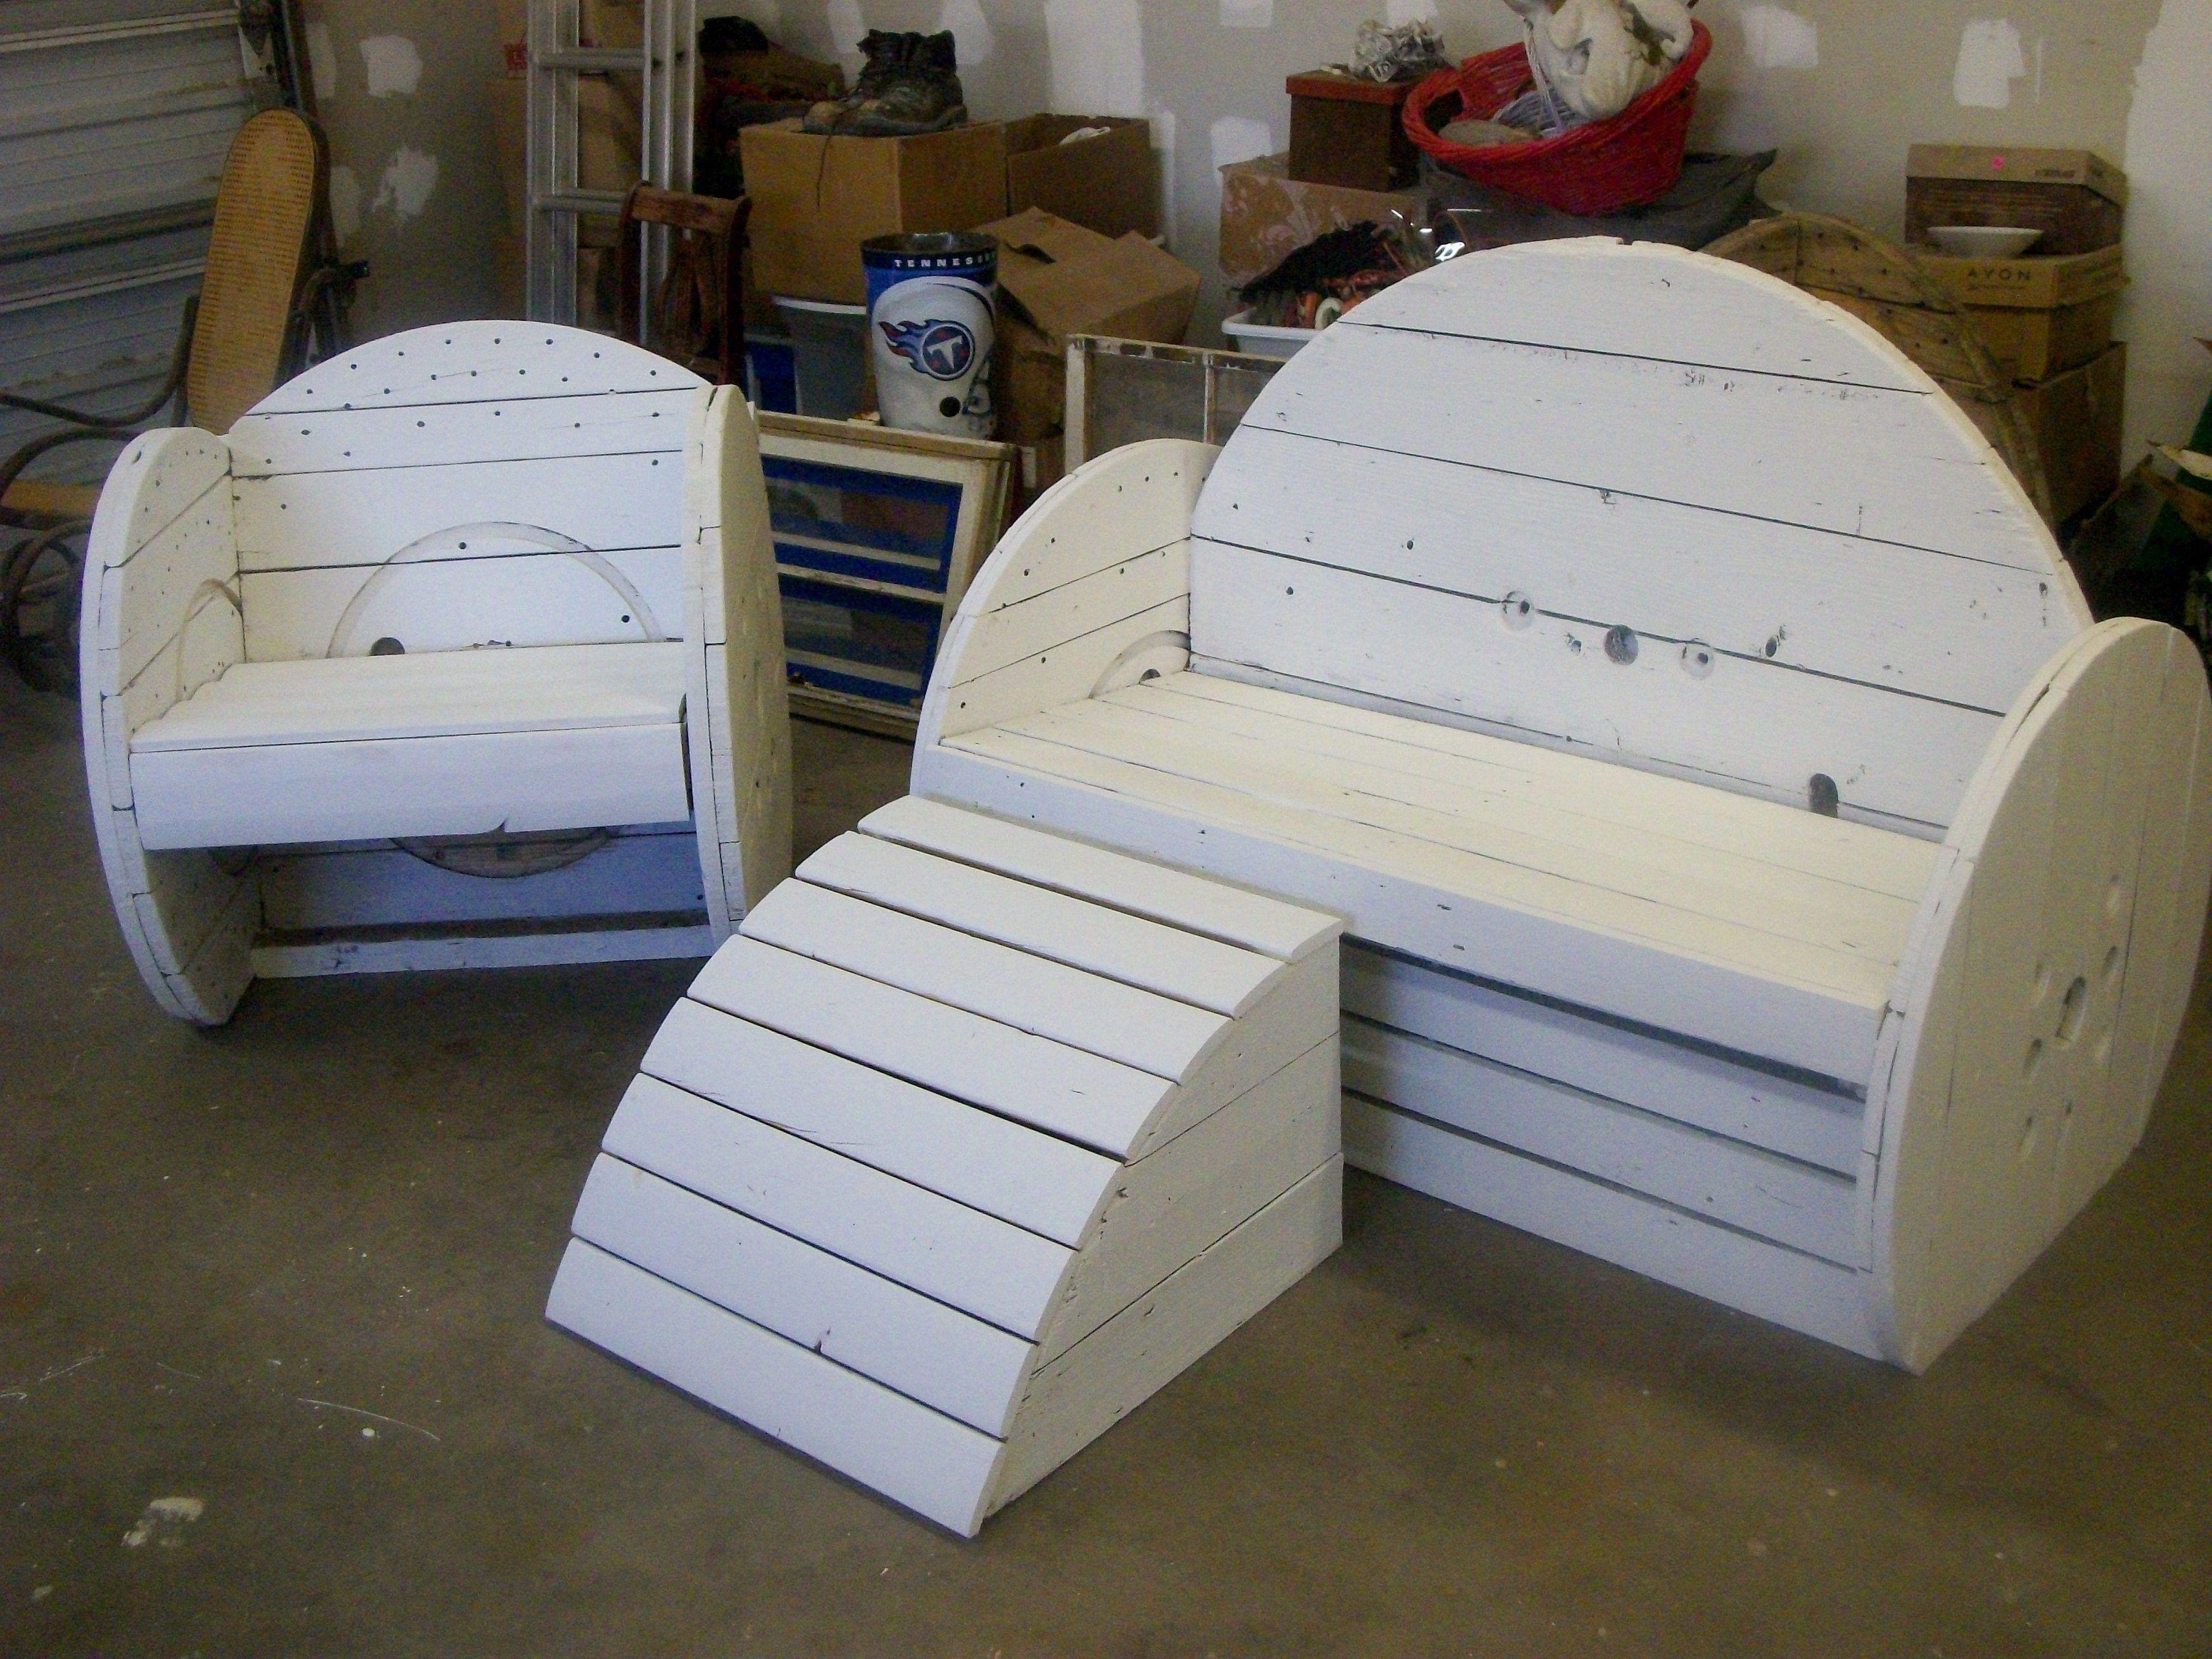 Patio furniture made from wooden cable spools   Large wooden spools ...